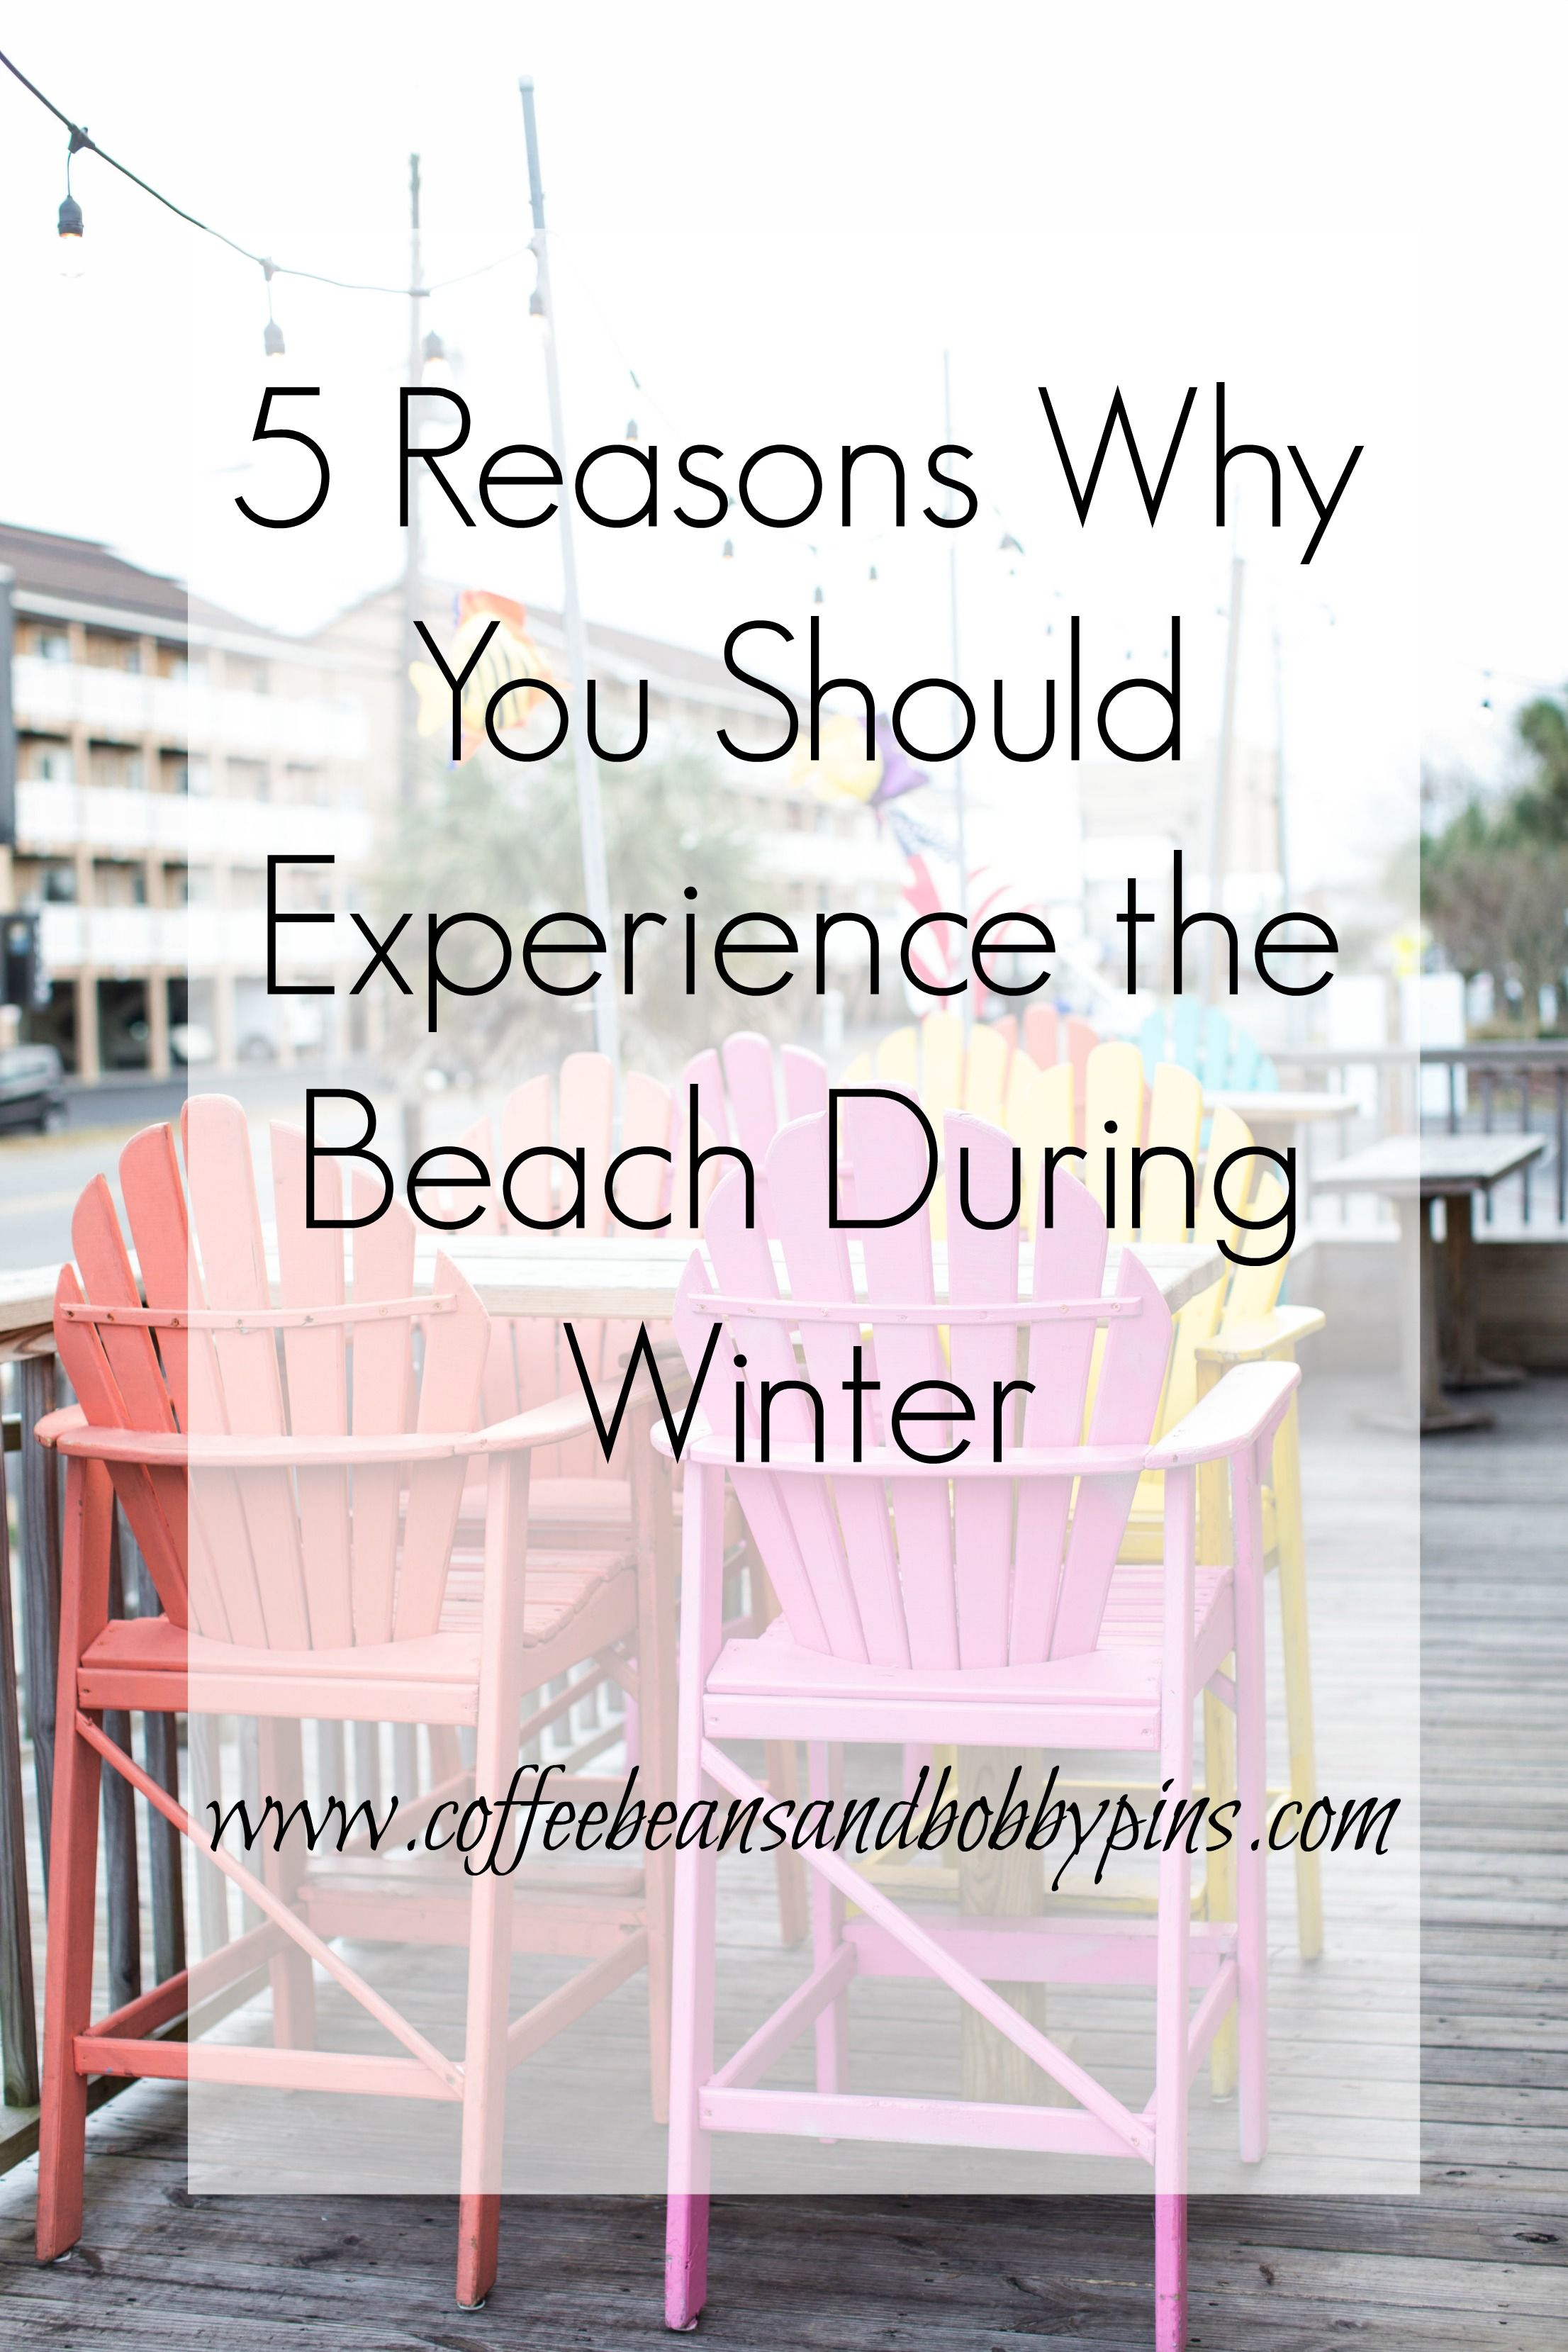 5 Reasons Why You Should Experience the Beach During Winter | coffeebeandandbobbypins.com